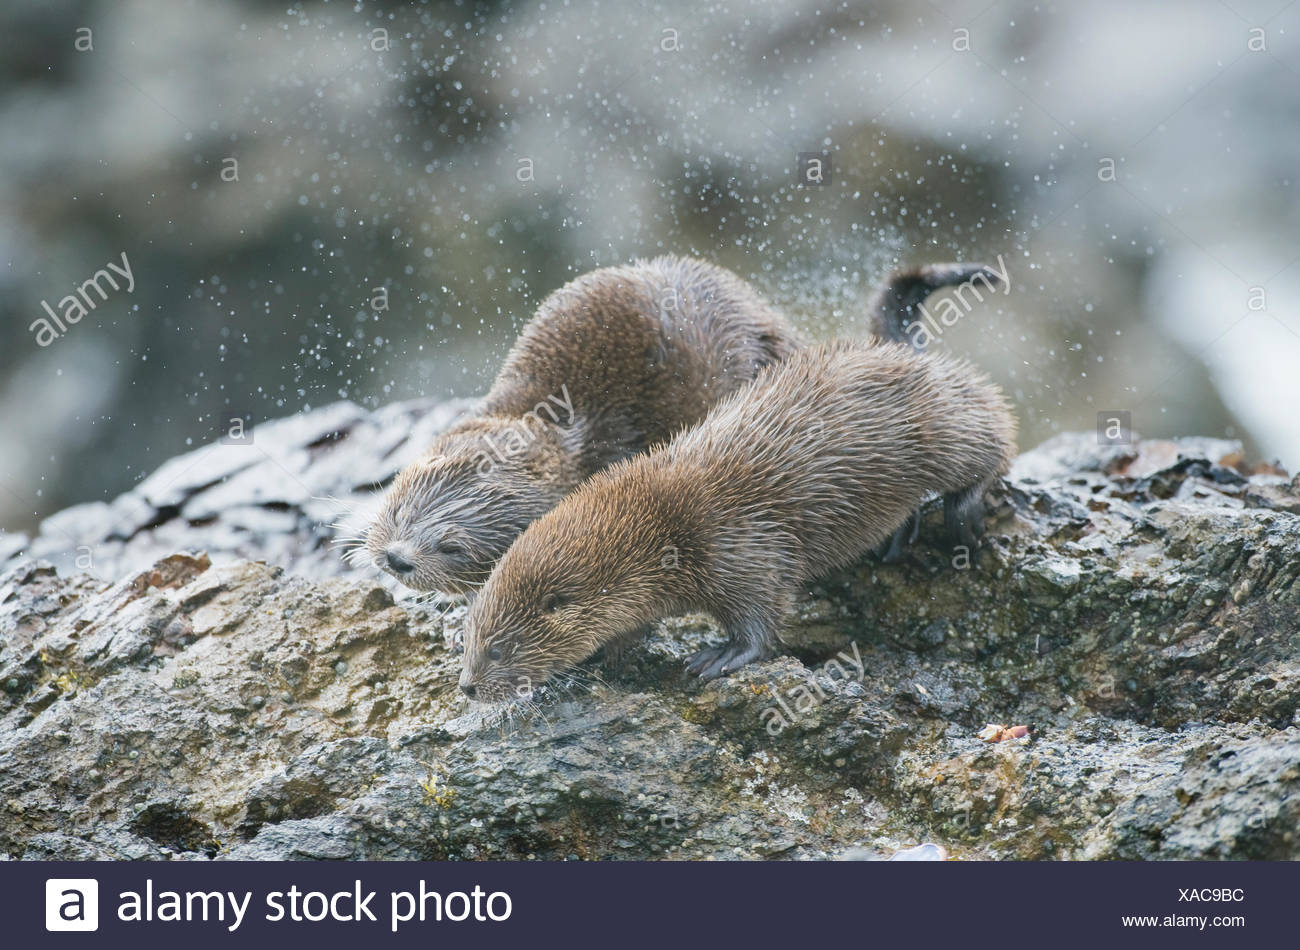 Marine otters (Lontra felina) mother and grown pup shaking off water, Chiloe Island, Chile, Endangered species - Stock Image